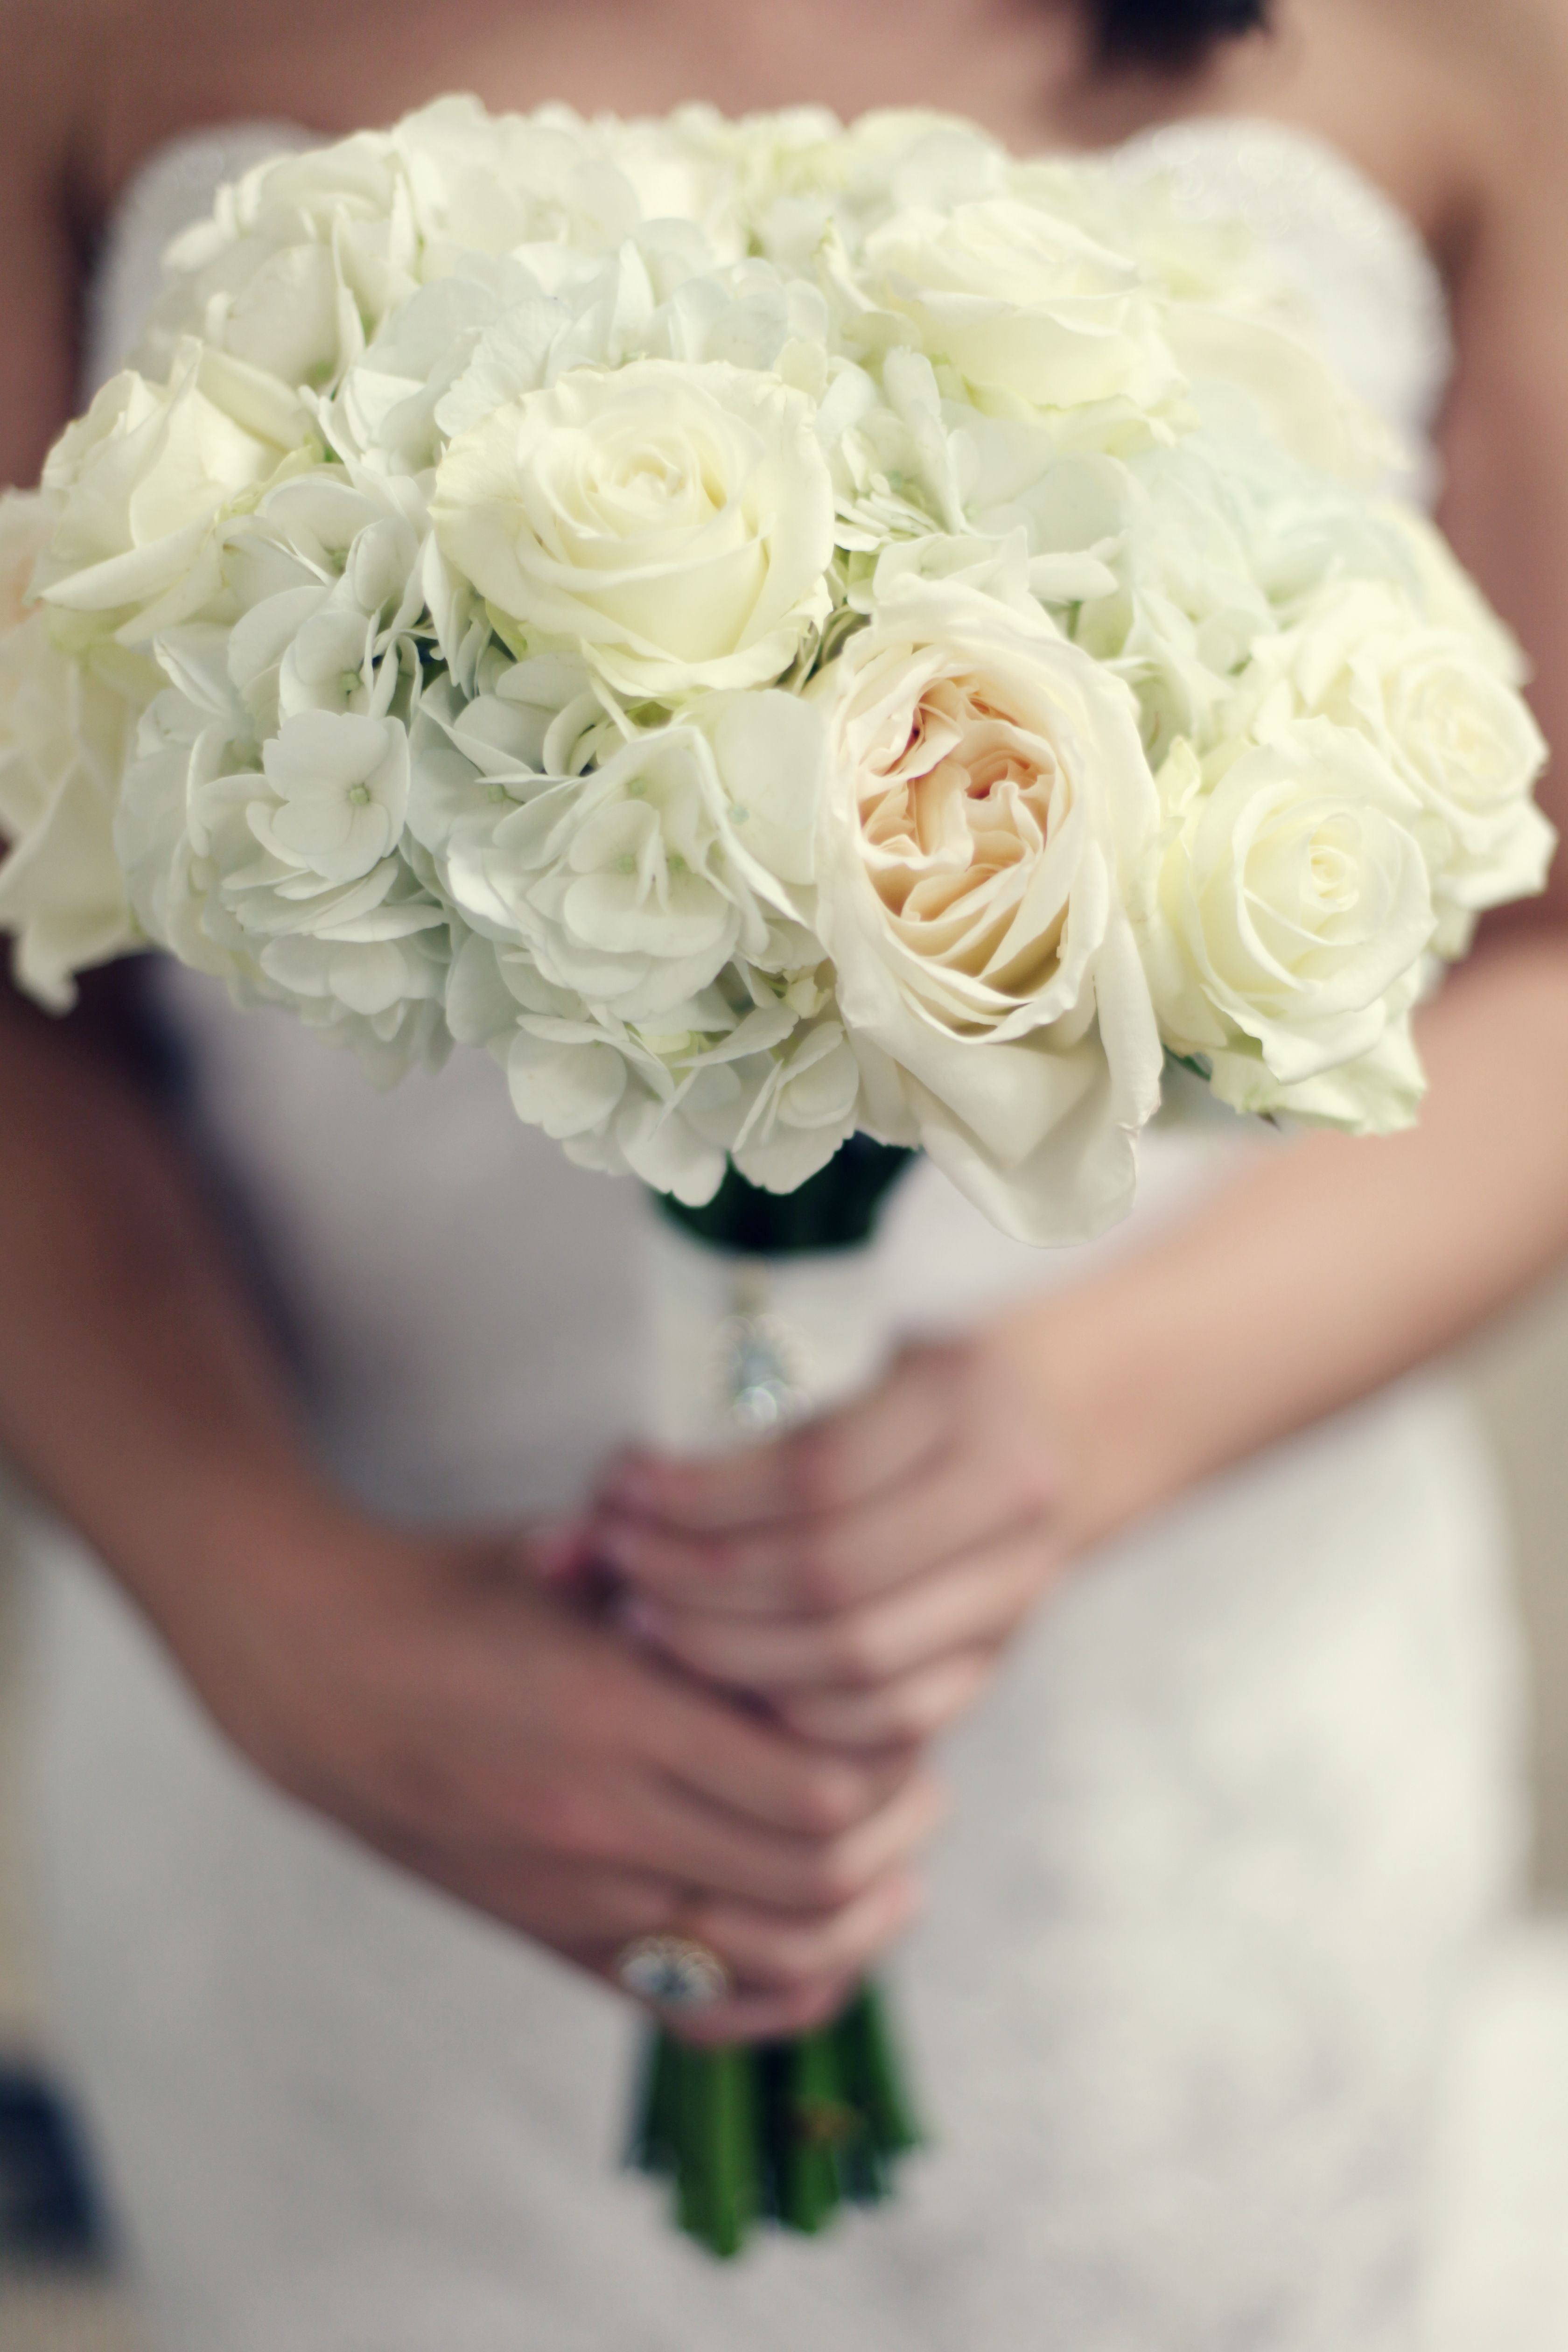 bouquet white garden roses and hydrangeas